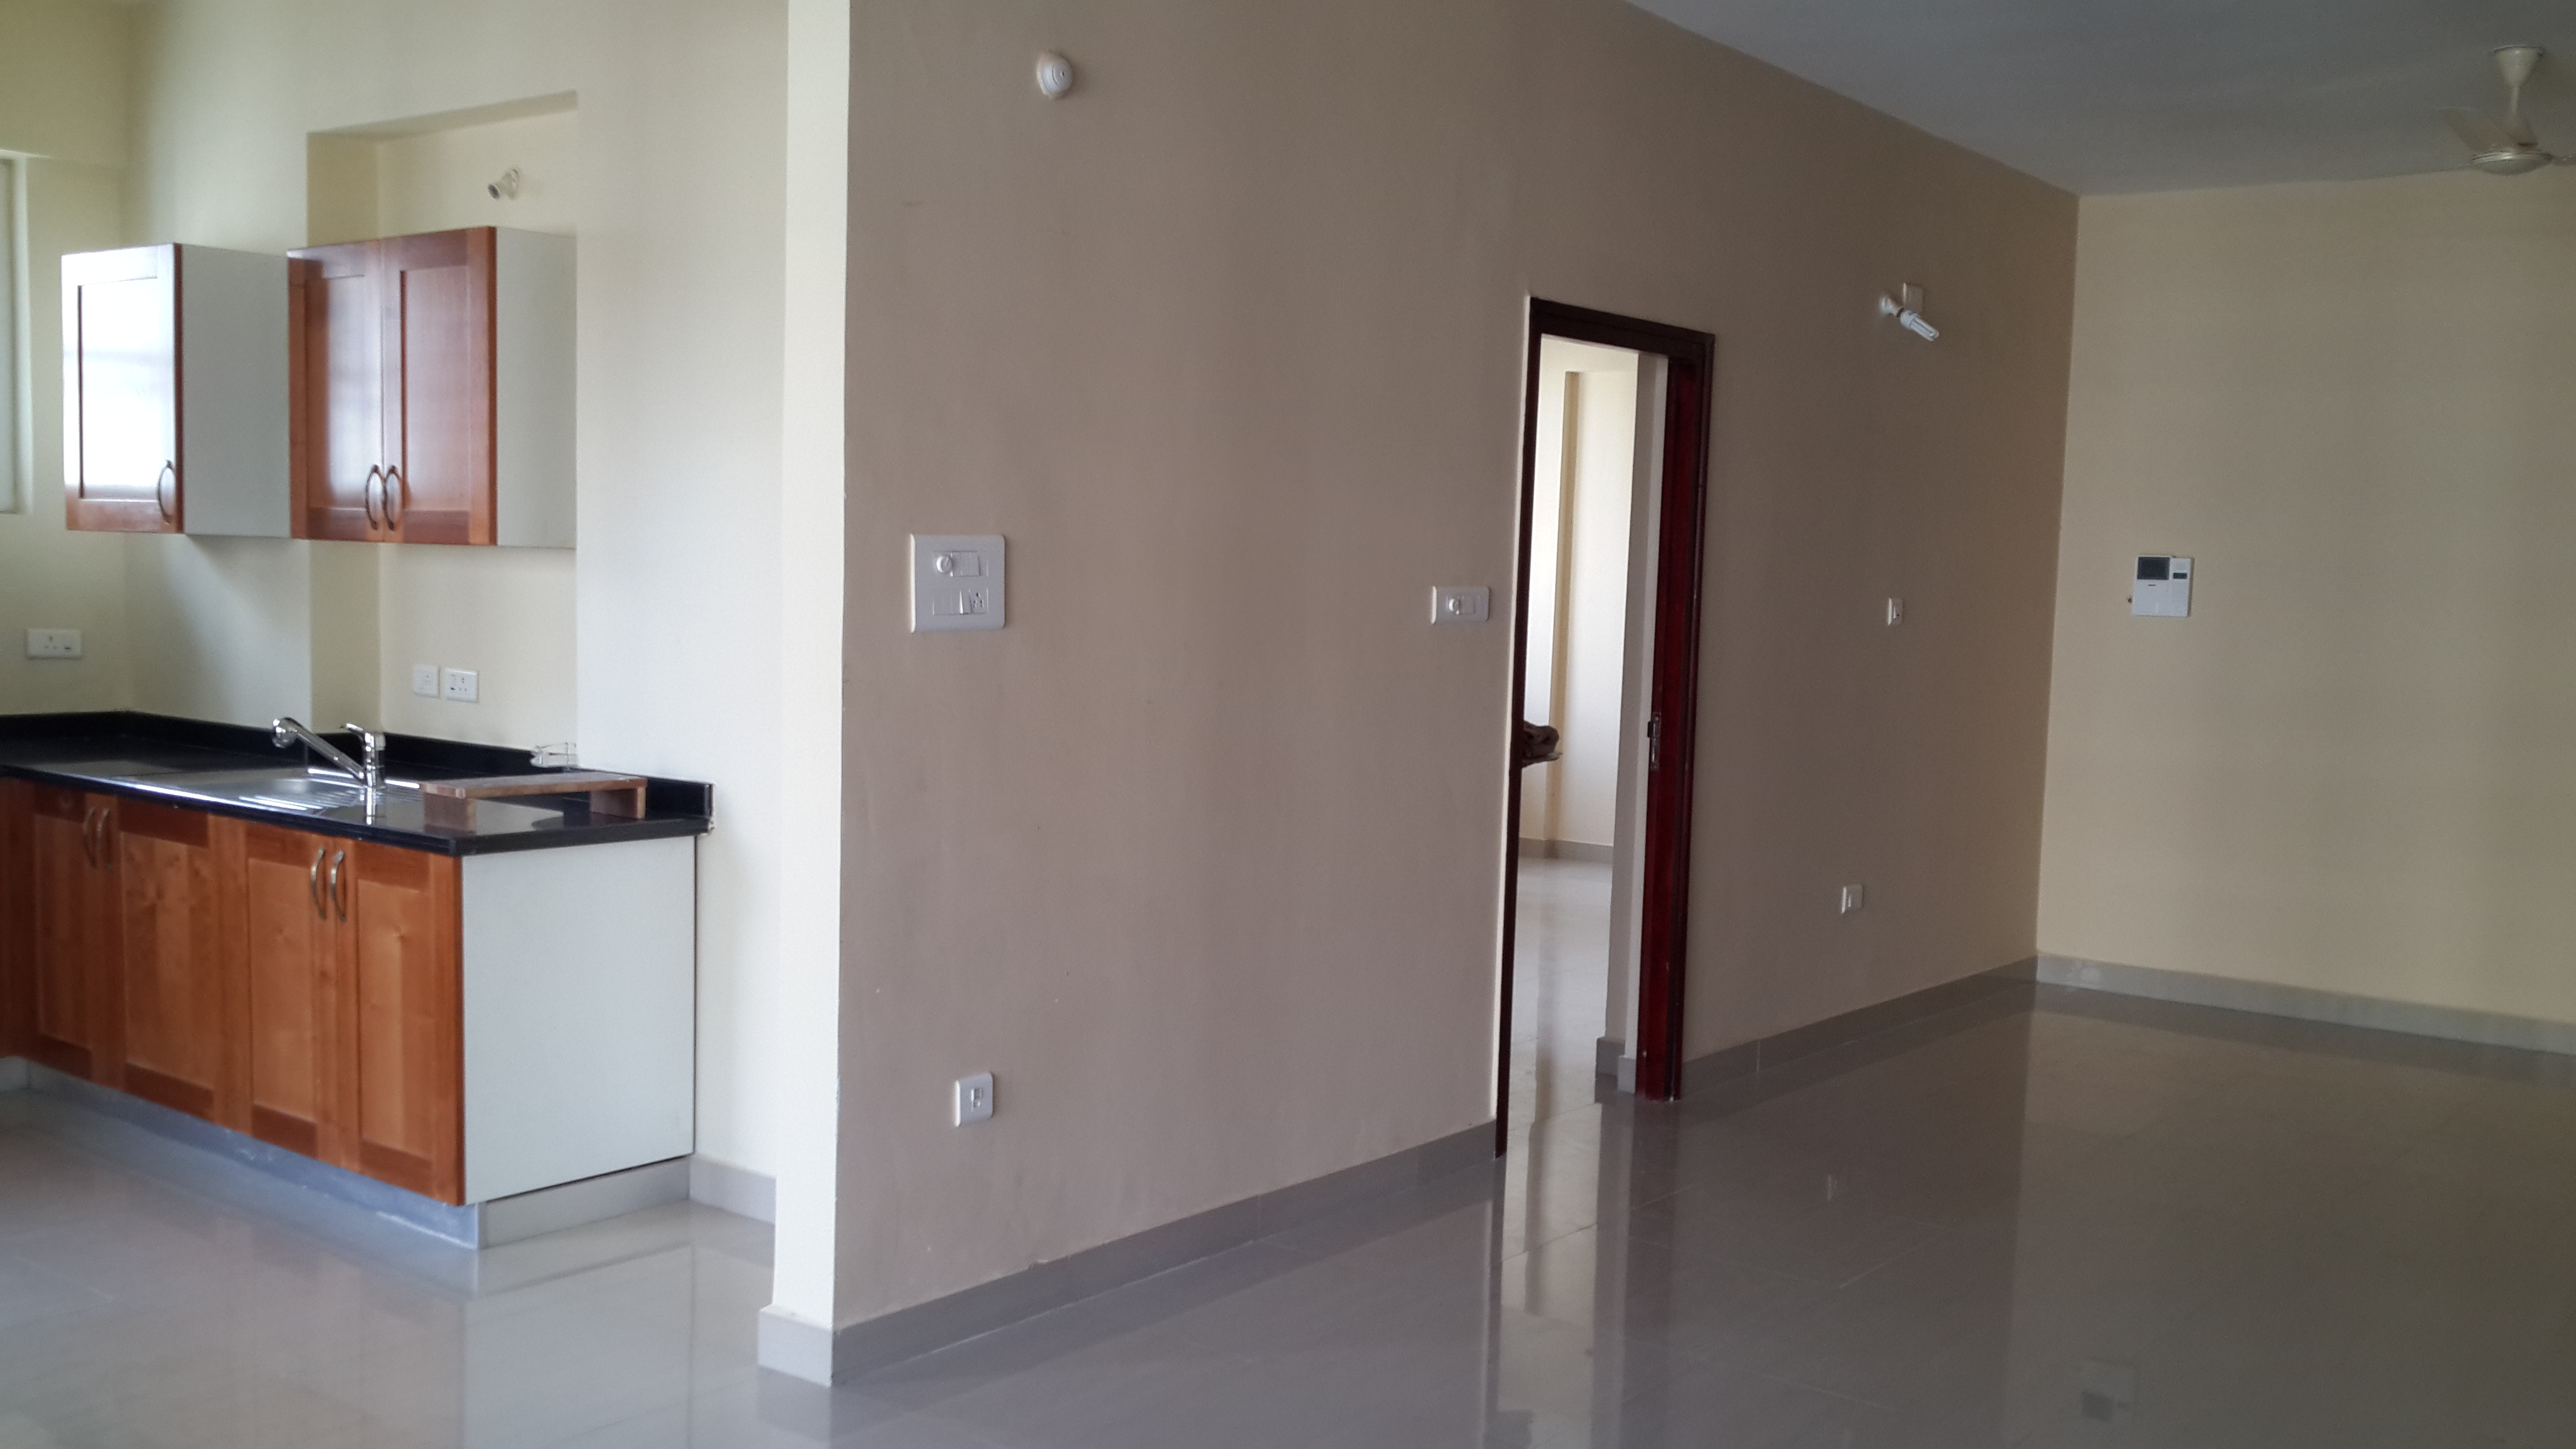 Awesome hill county apartments sai chintala 39 s blog for Model apartments